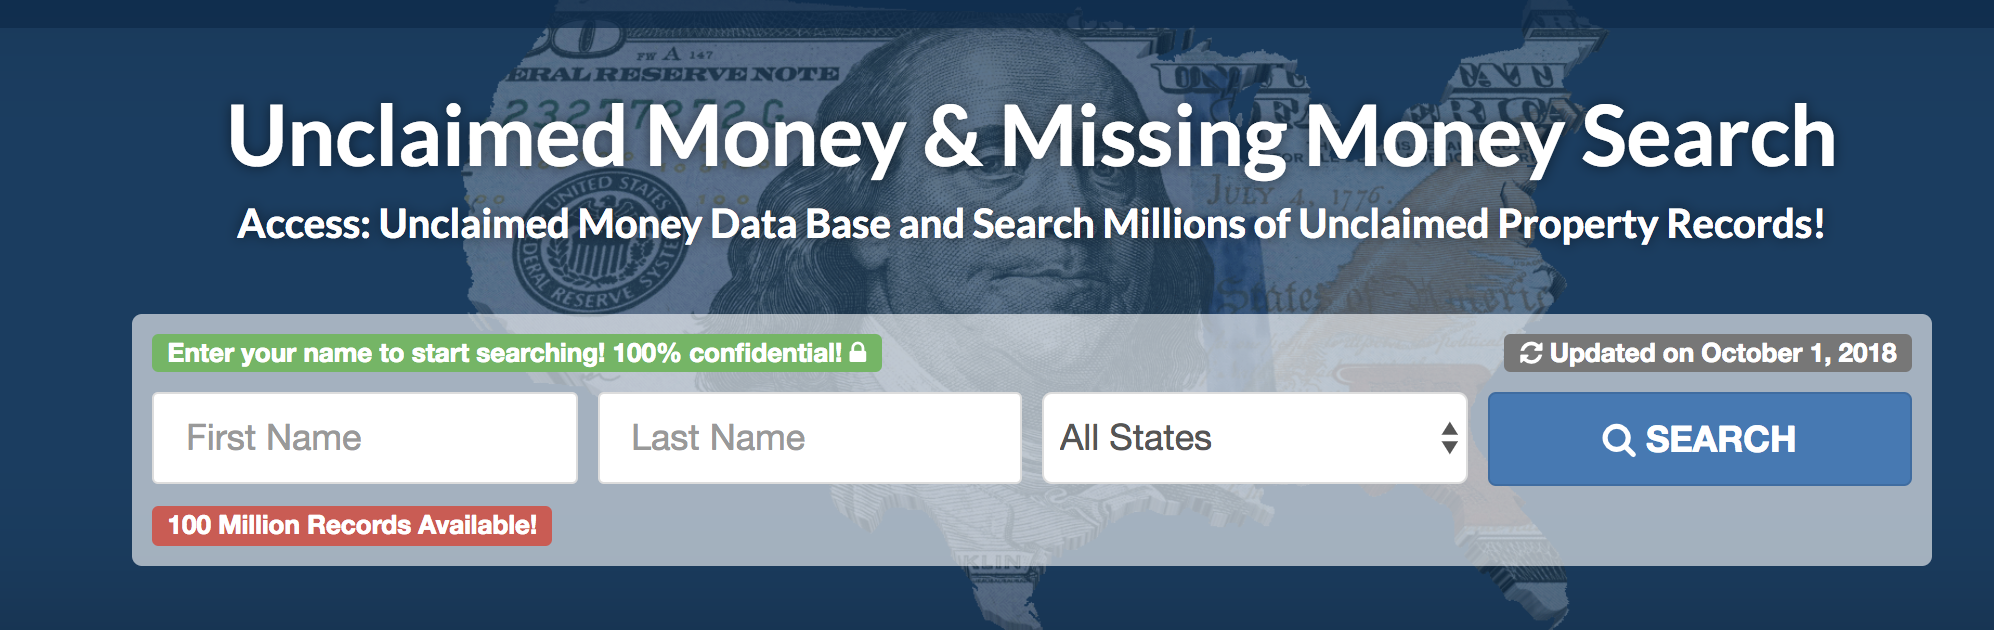 unclaimed money records